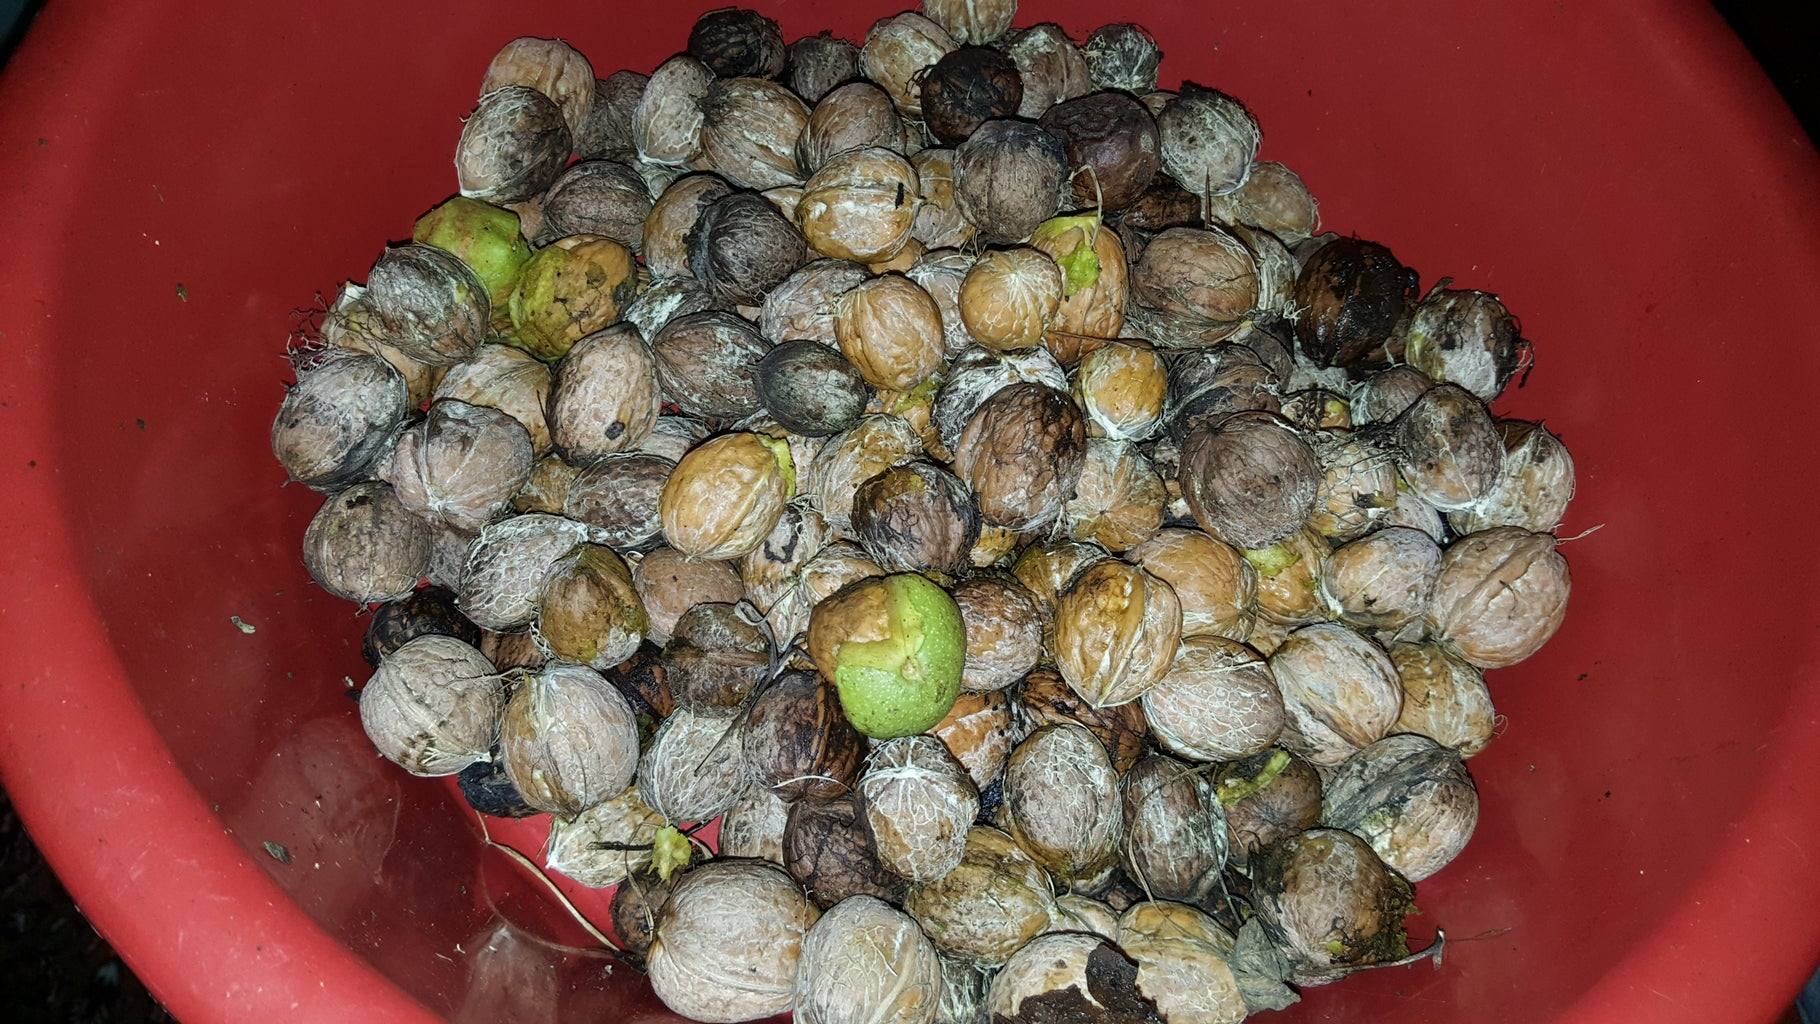 There Are Two Methods to Remove the Green Skin of Walnuts